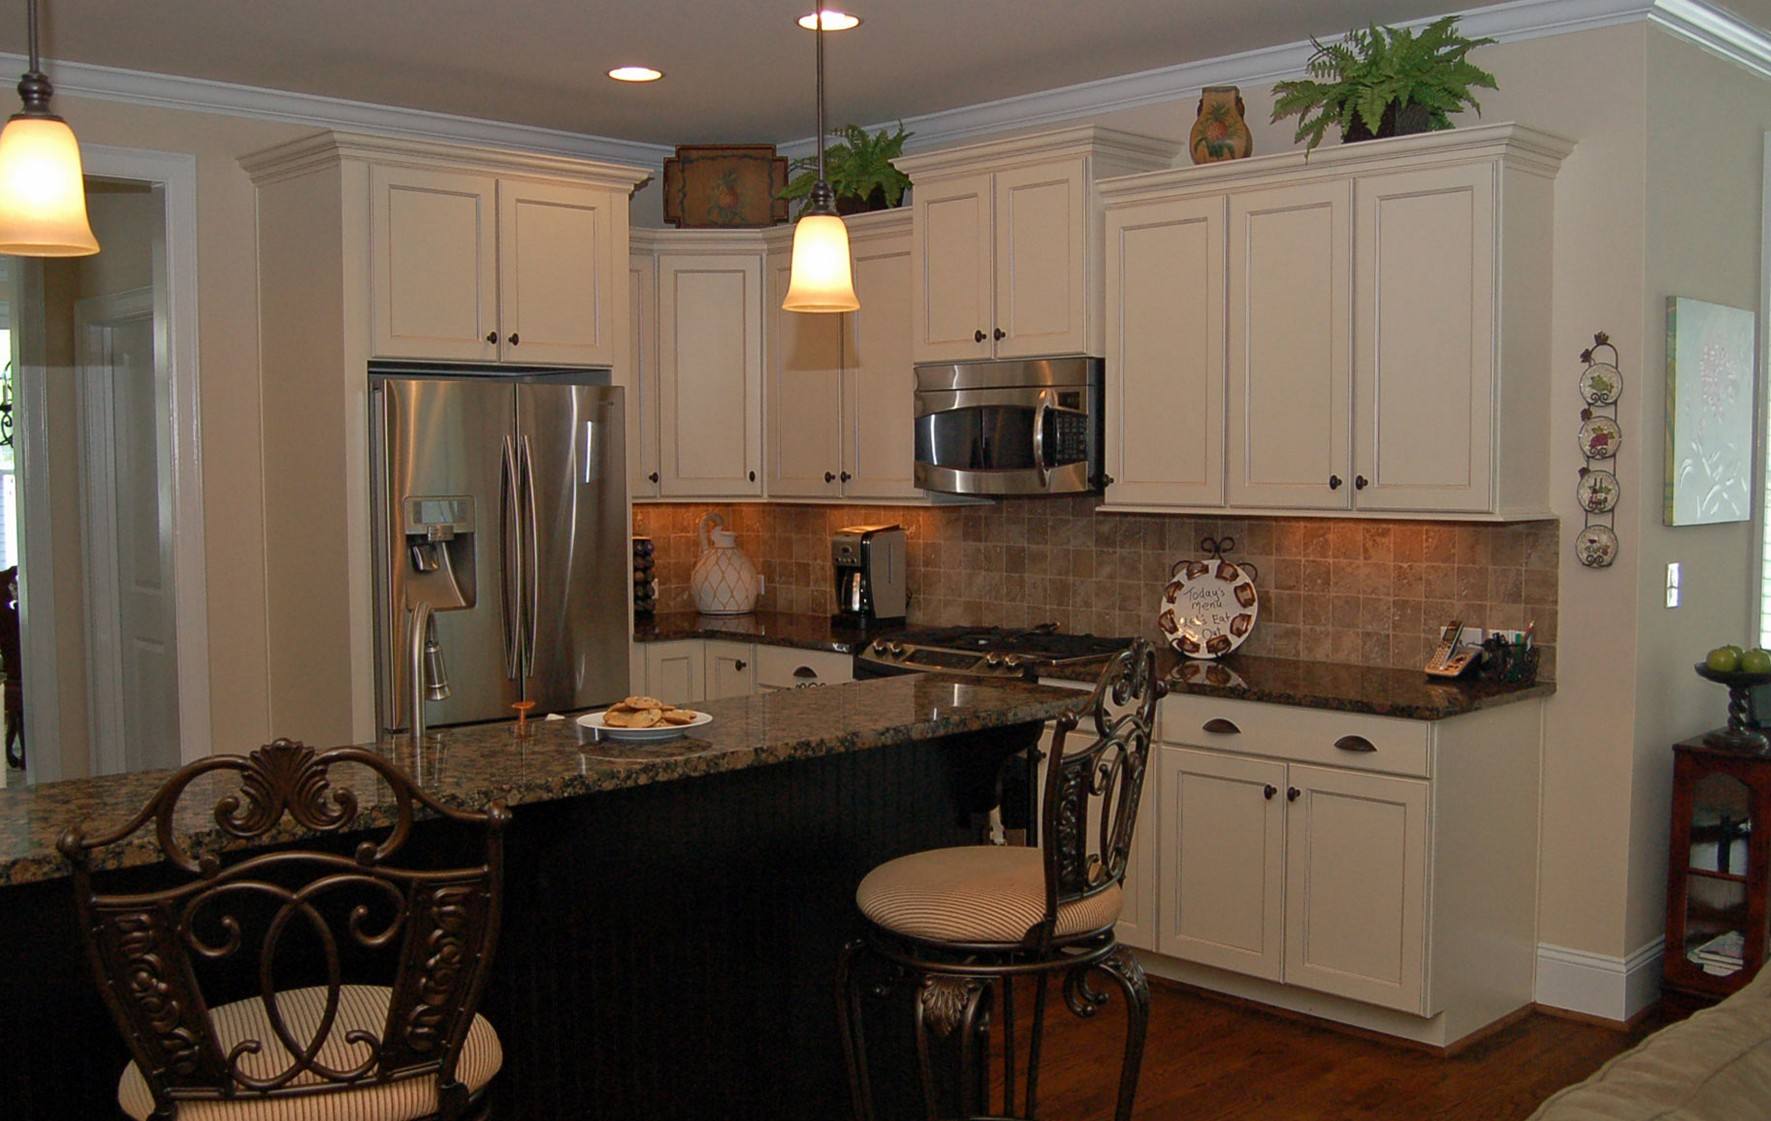 kitchen-white-cabinets-dark-countertops-photo-16